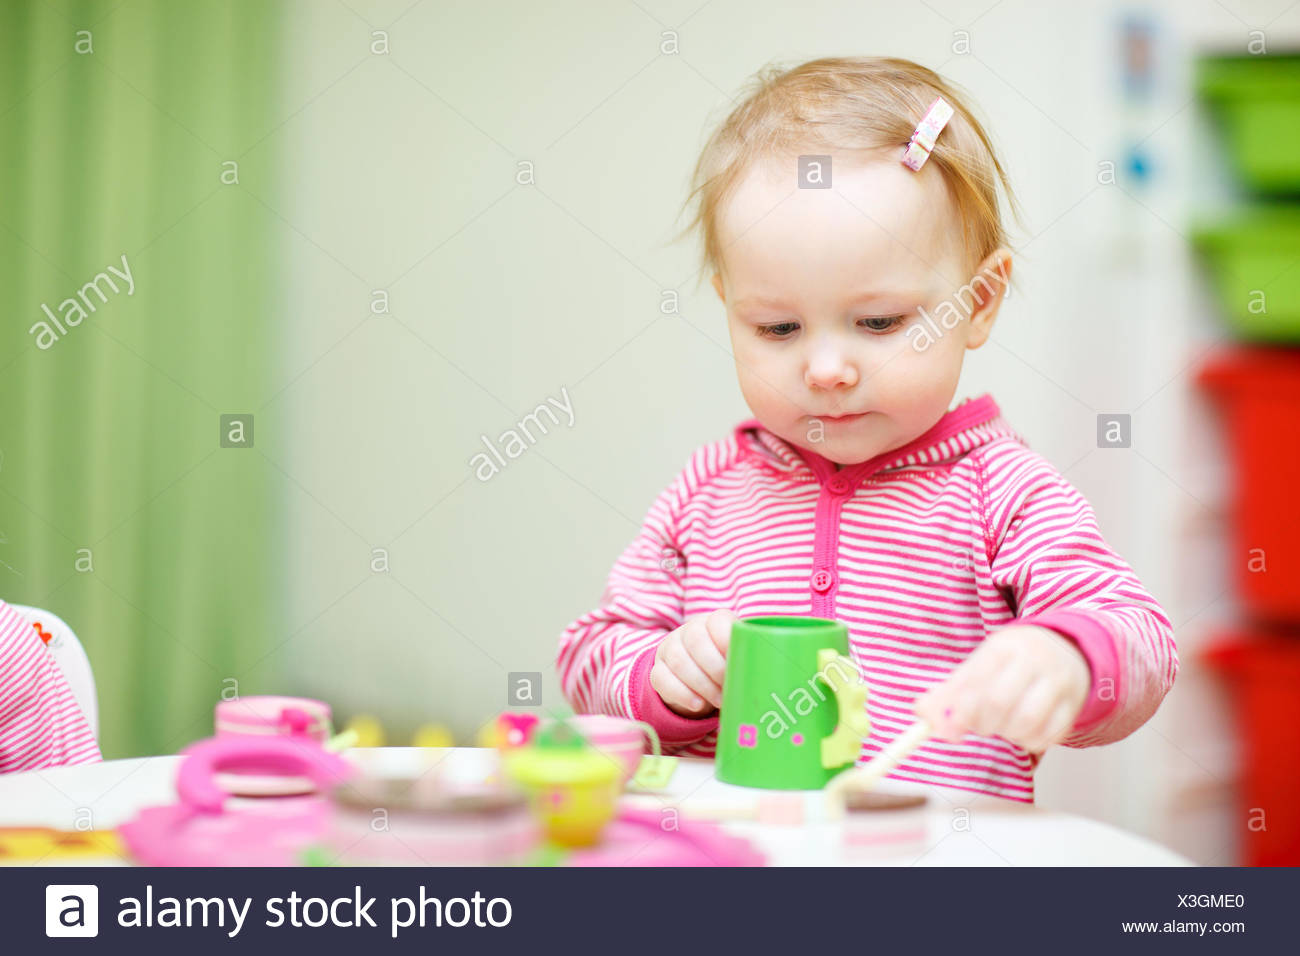 little girl plays drink coffee with plastic toys - Stock Image